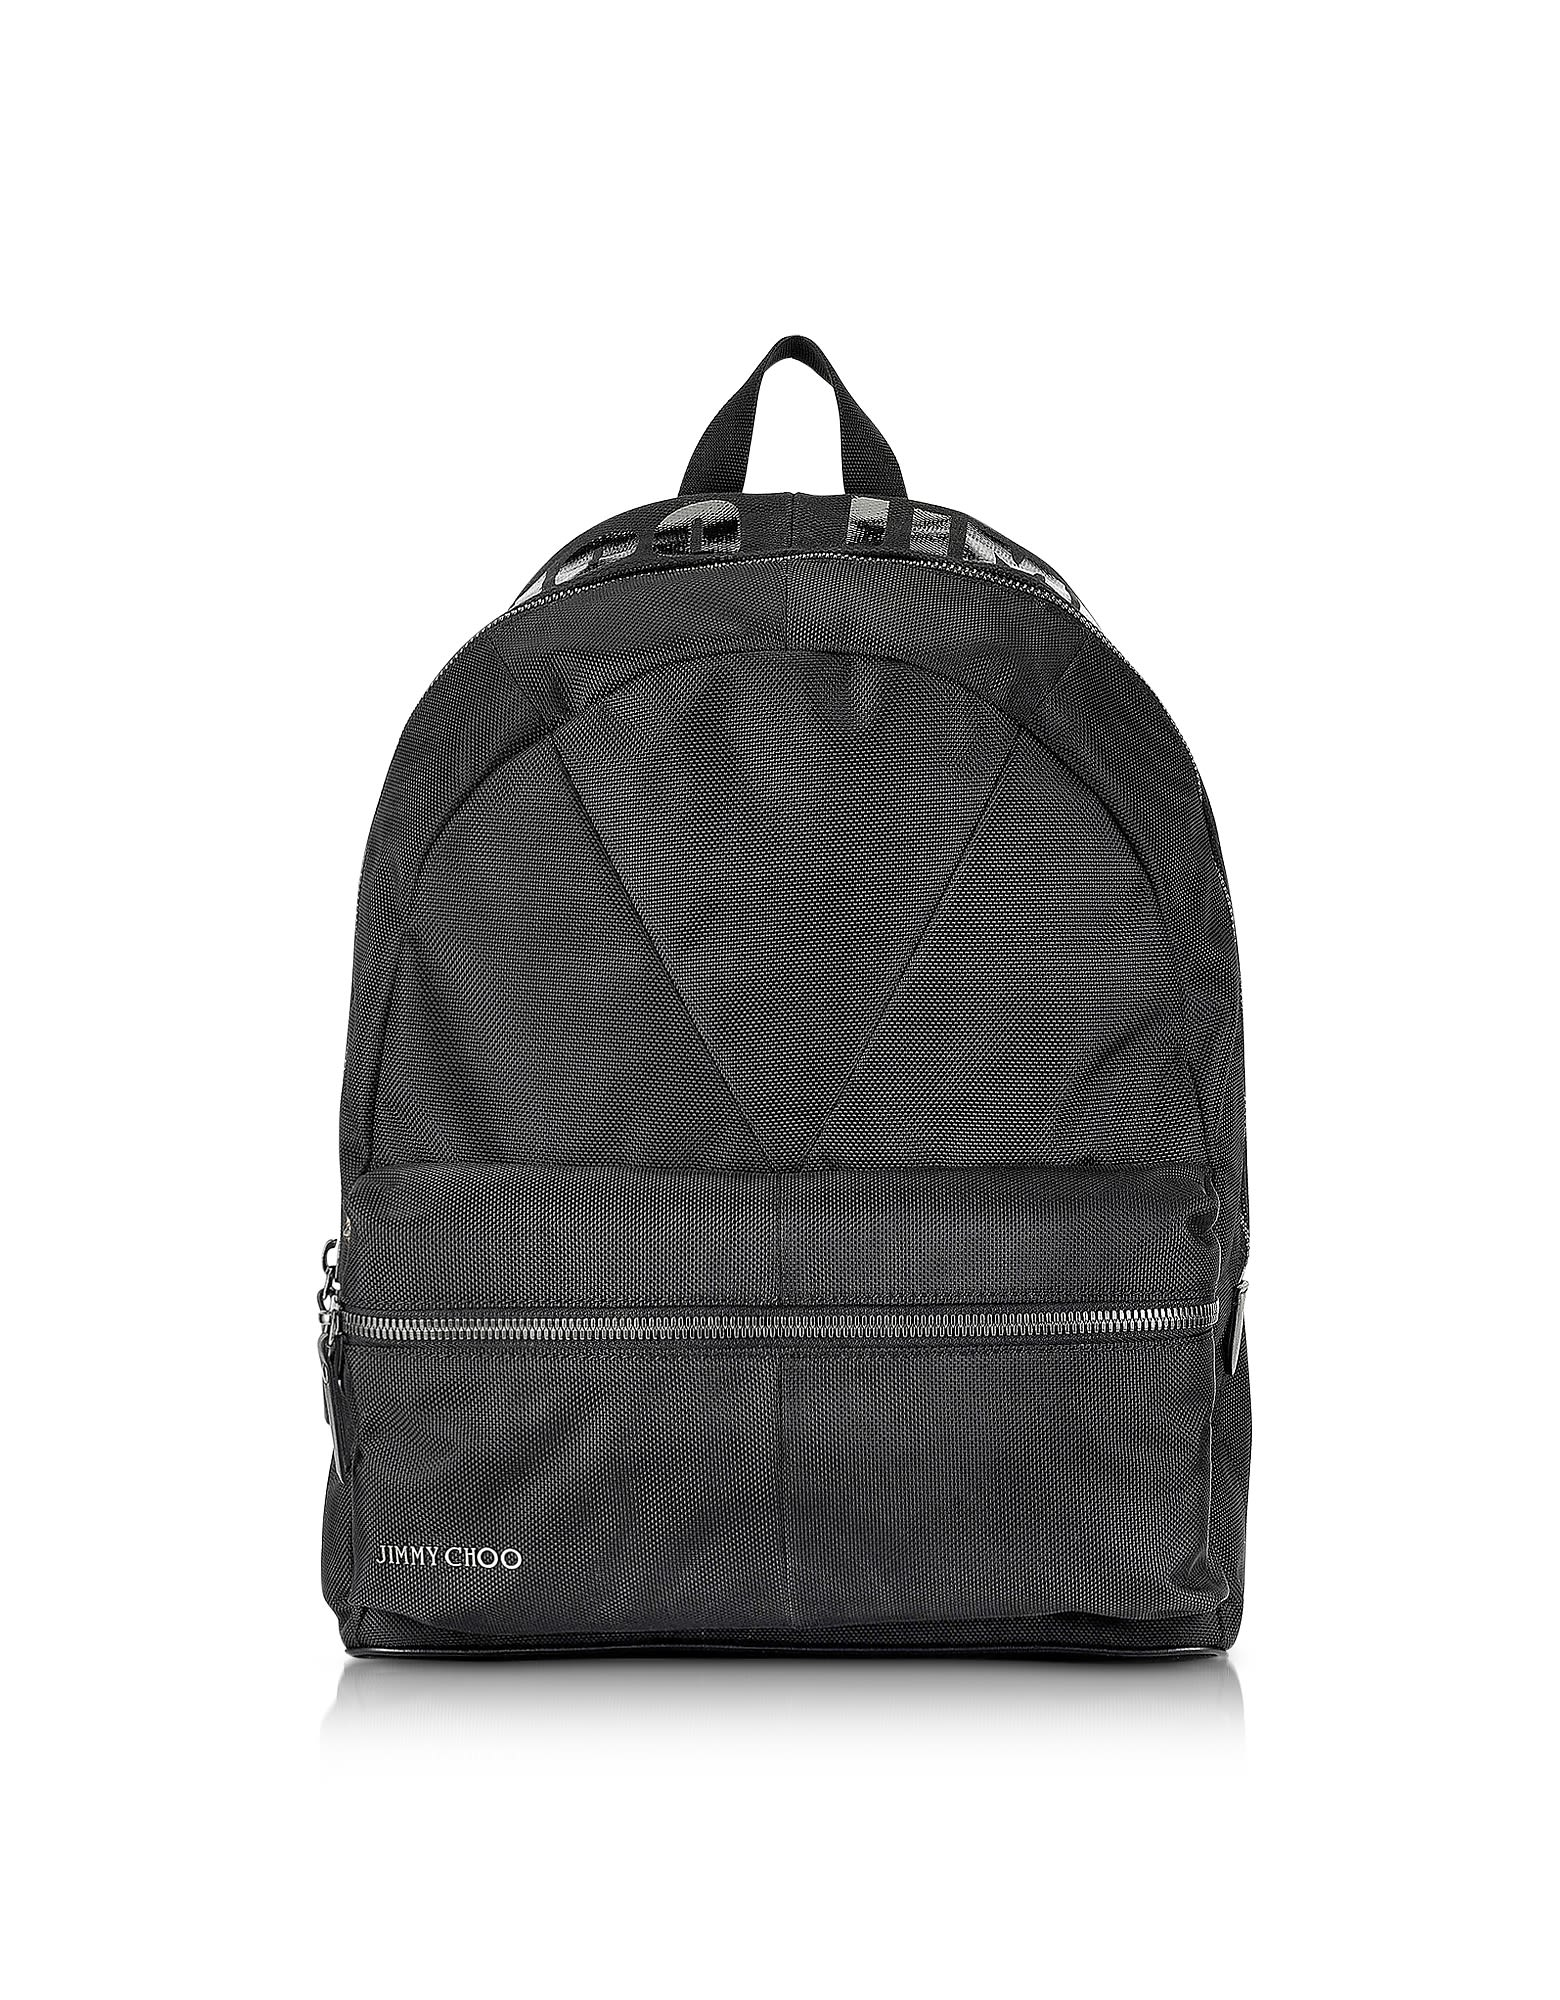 BLACK CANVAS AND WOVEN NYLON BACKPACK